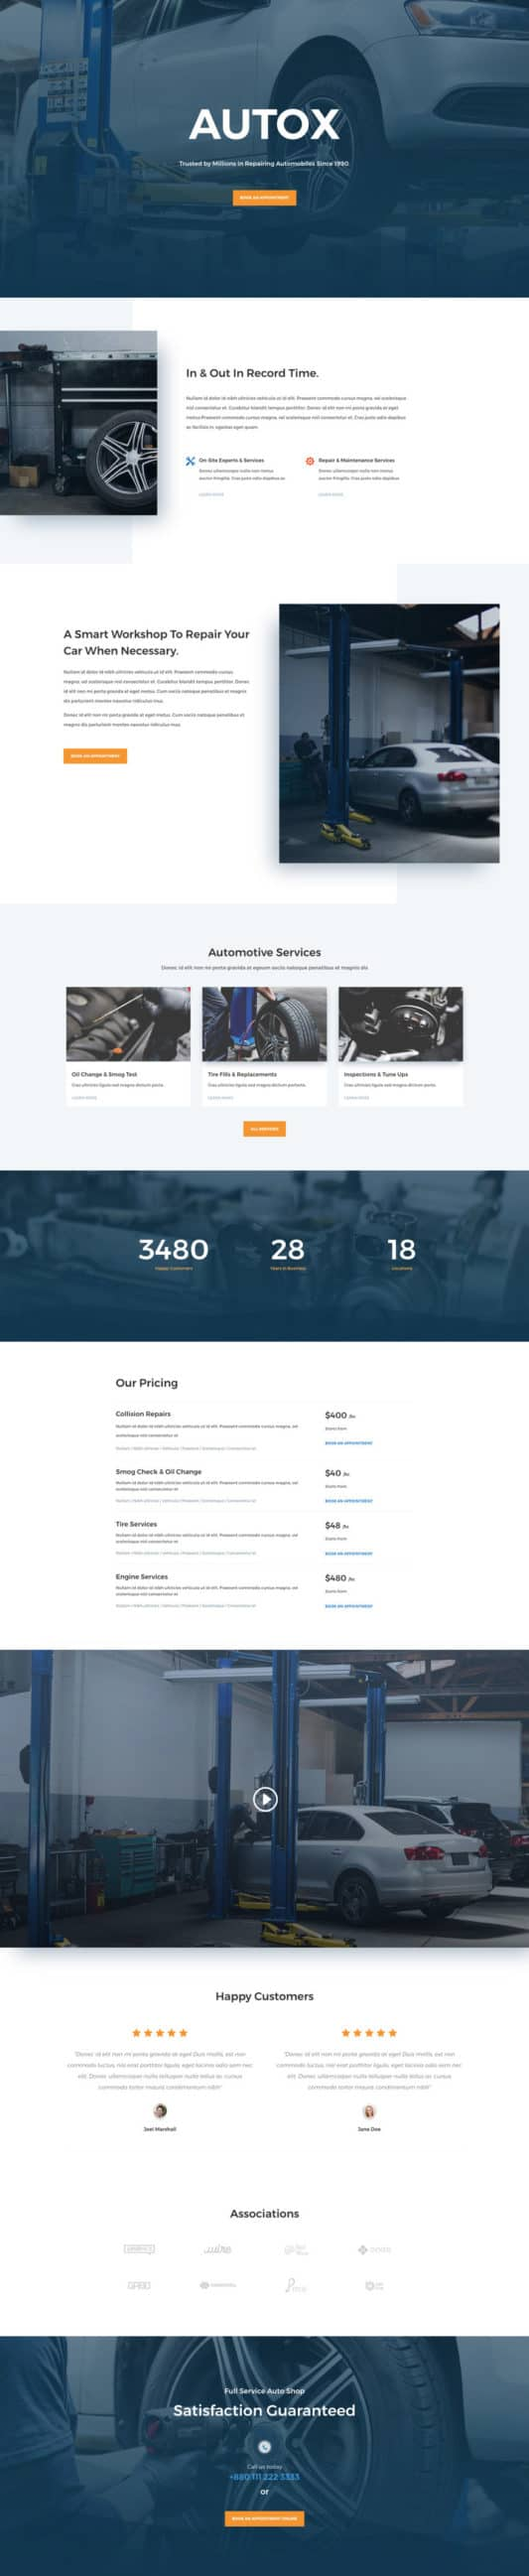 The Auto Repair Page Style: Homepage Design 1